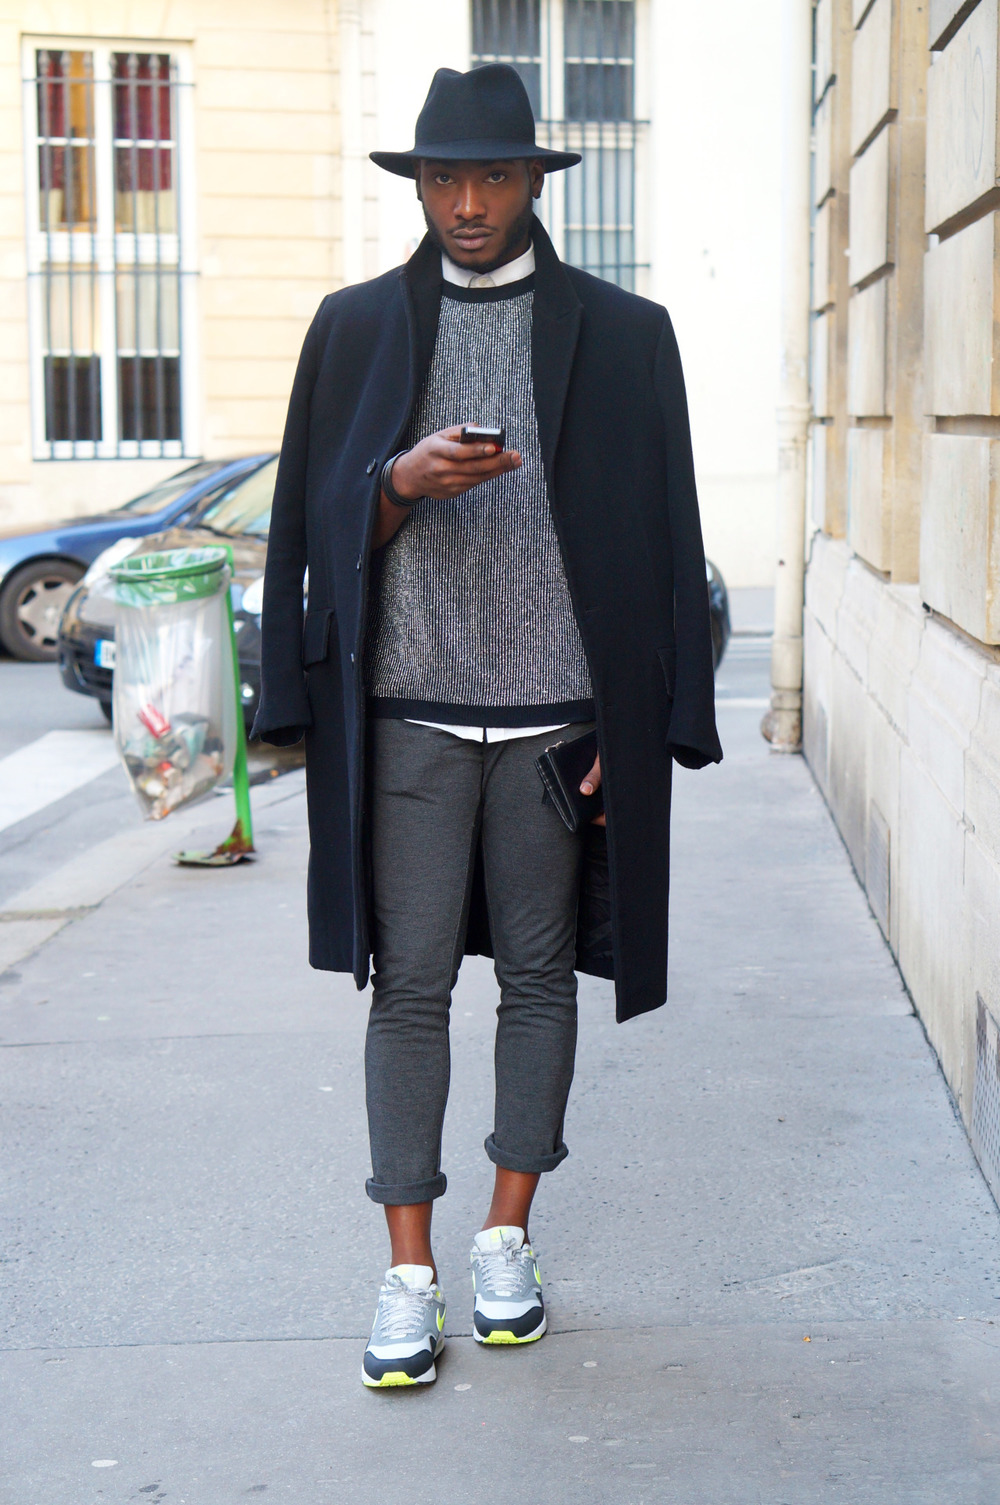 blackfashion: Harvey, 22, Paris, http://www.harveymm.com instagram: Harvey_mm